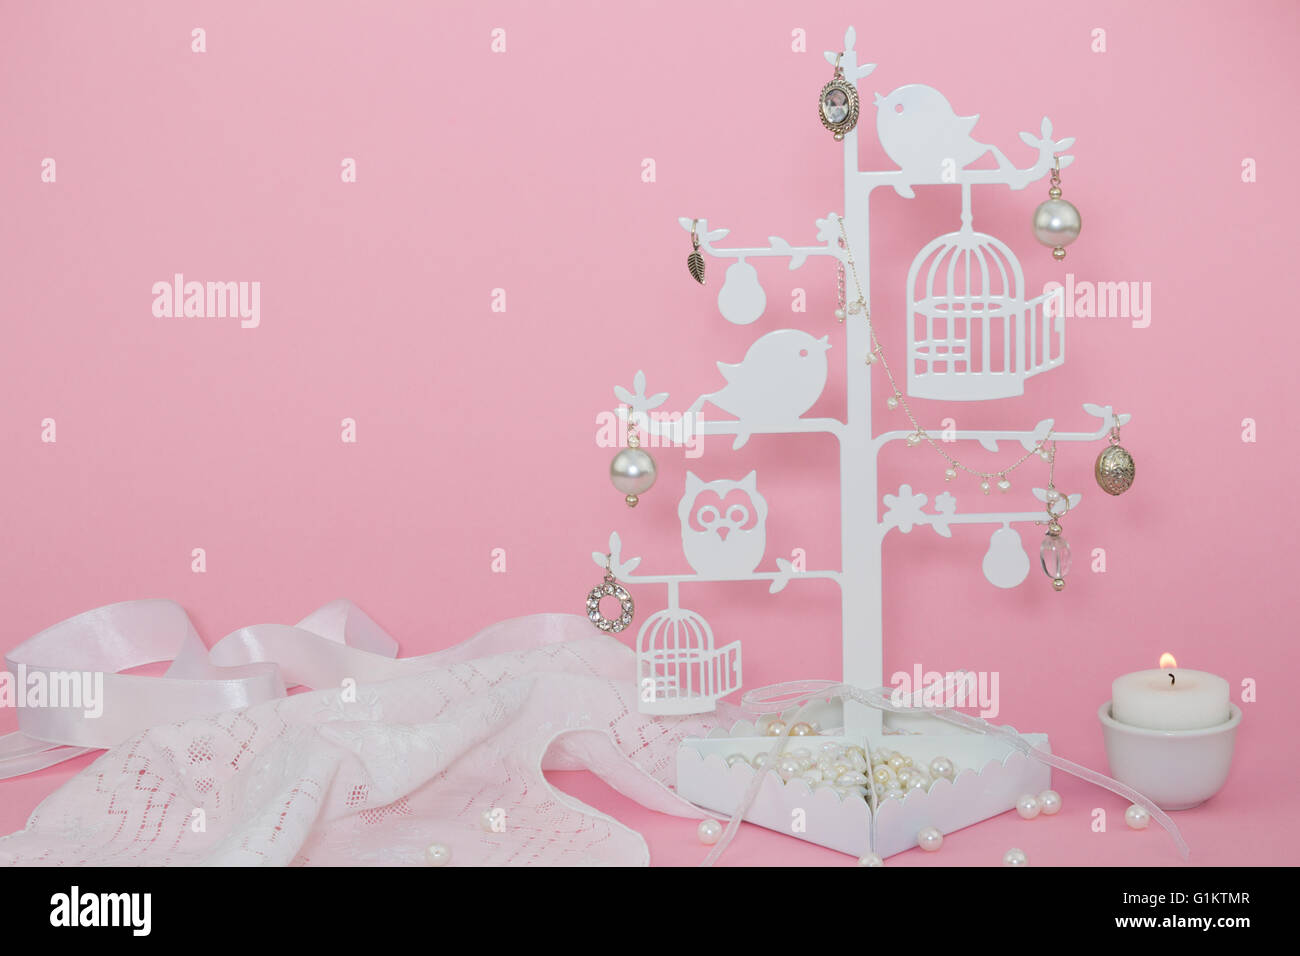 Baby pink invitation background with candle and charms - Stock Image